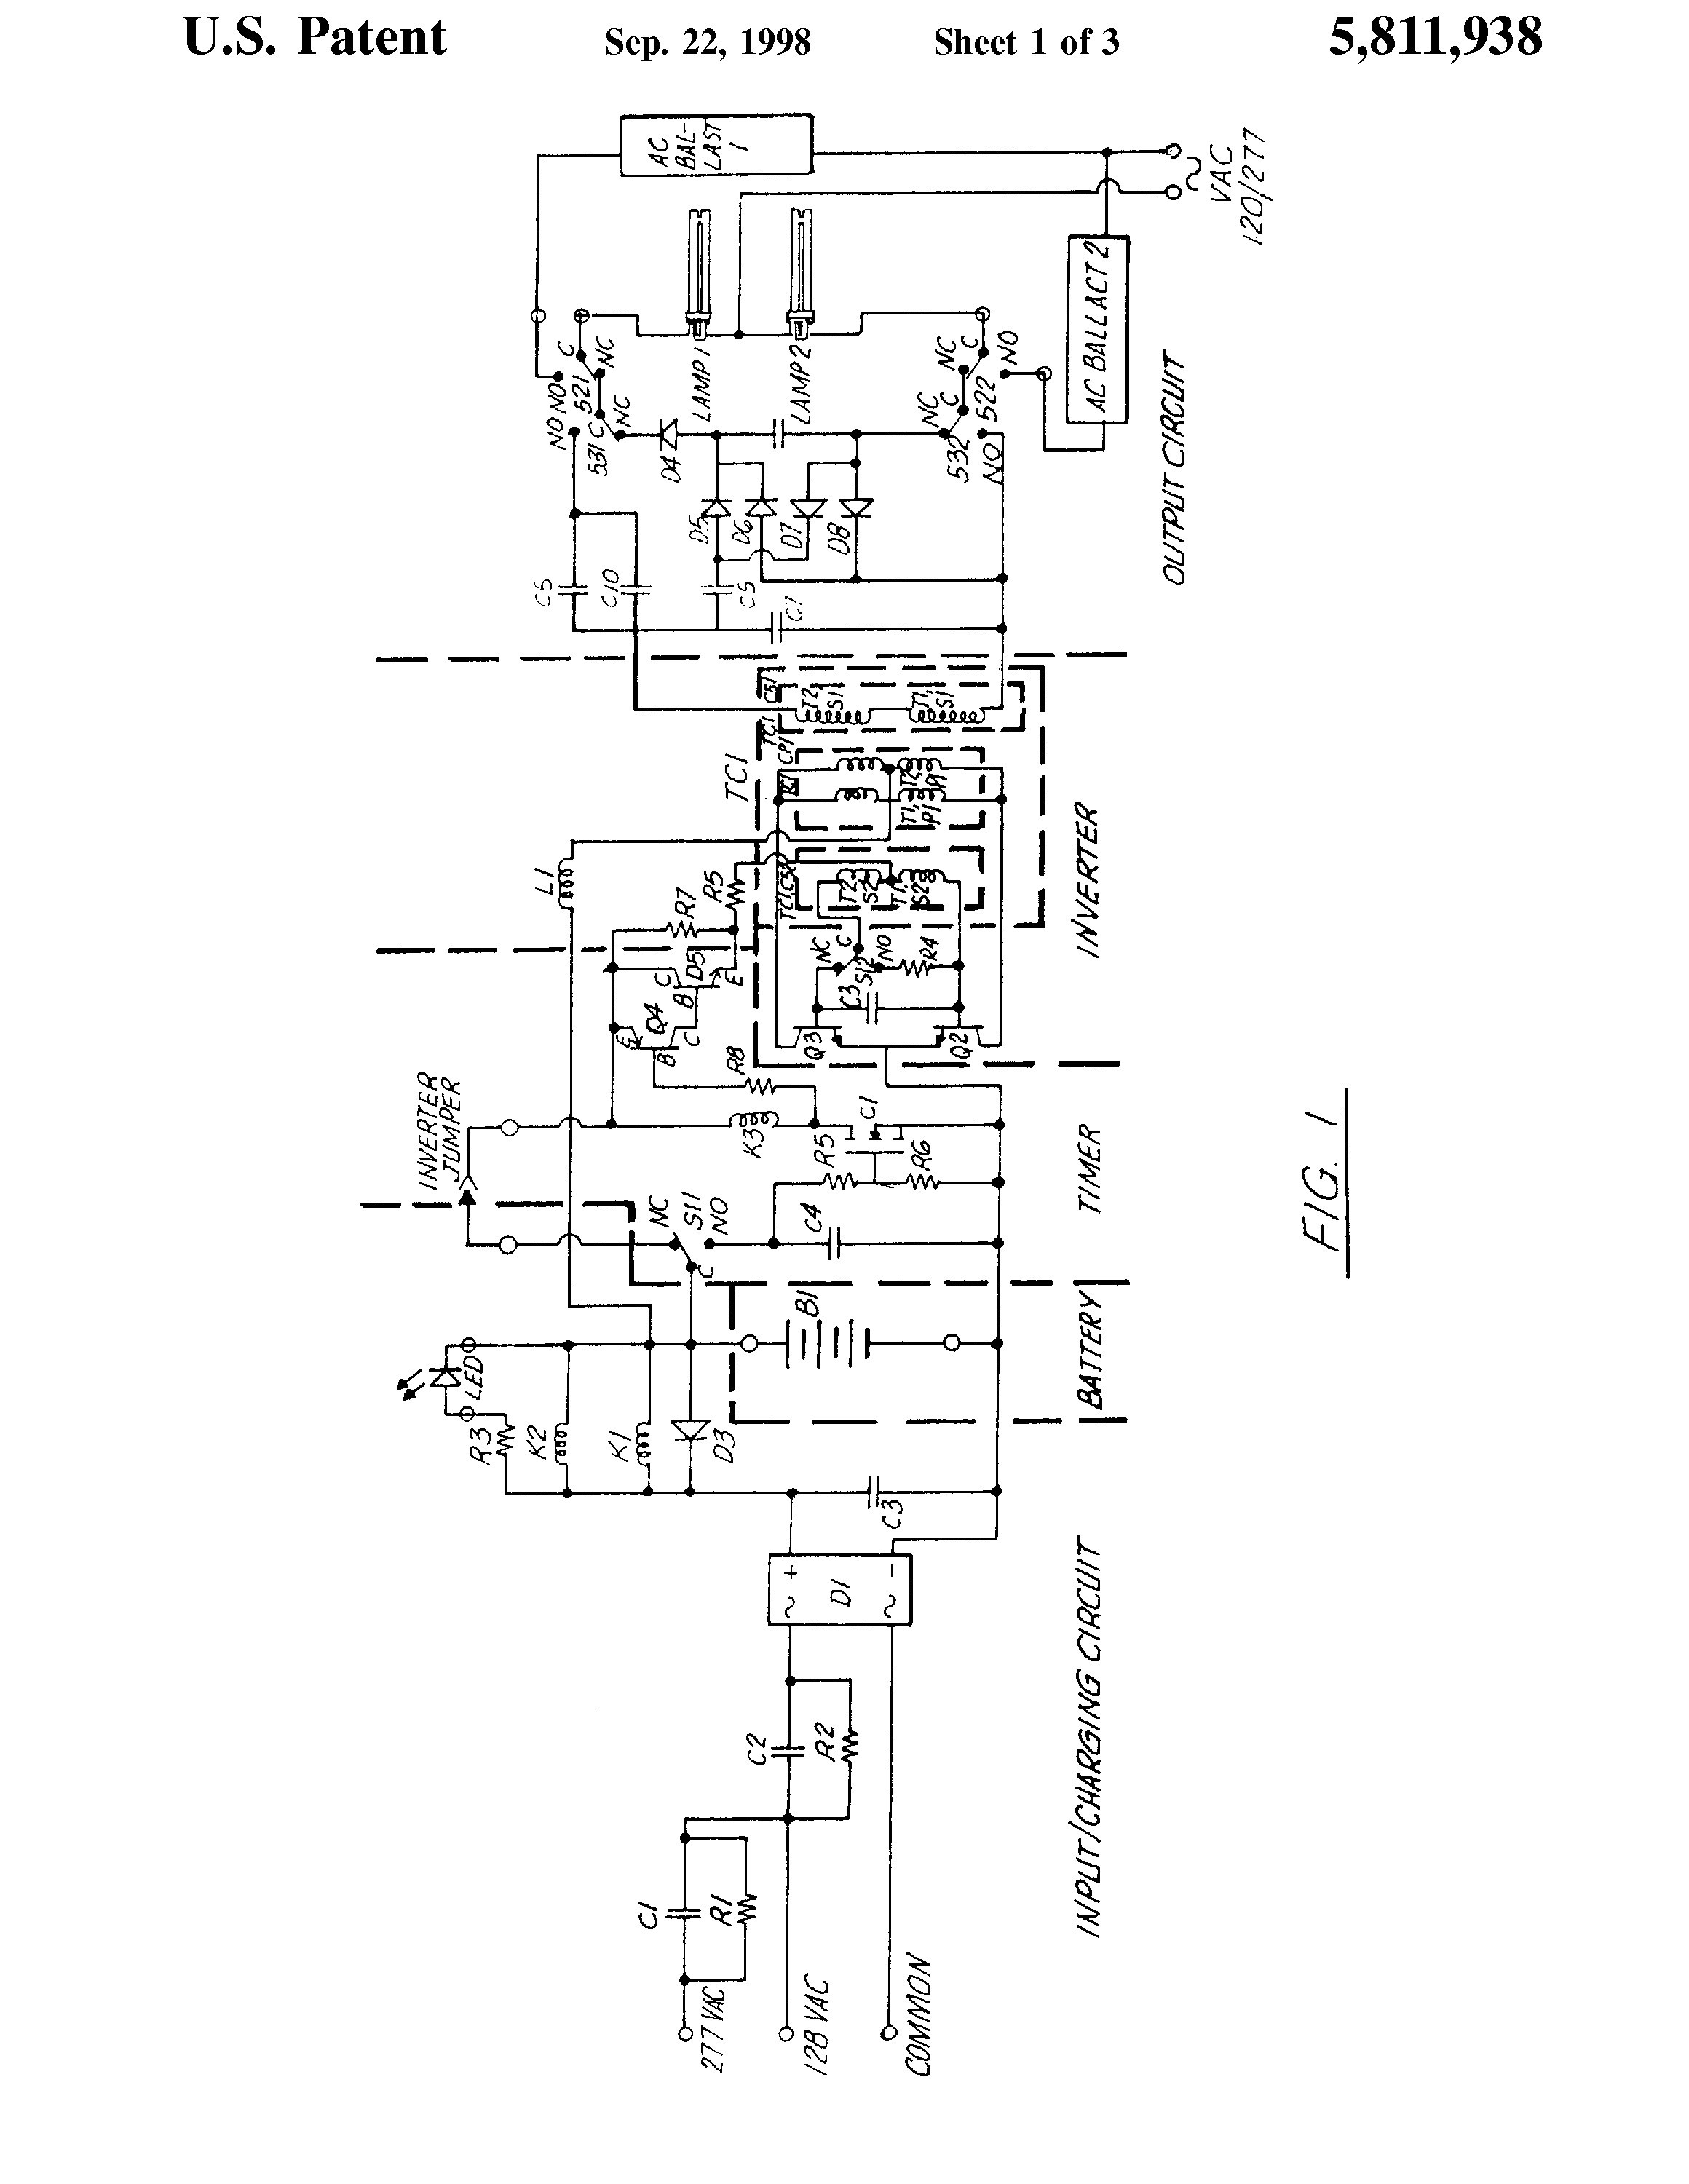 sni 35 adjustable line output converter wiring diagram Download-Scosche Line Out Converter Install Instructions Beautiful Fresh Pac Sni 35 Wiring Diagram Diagram 2-k